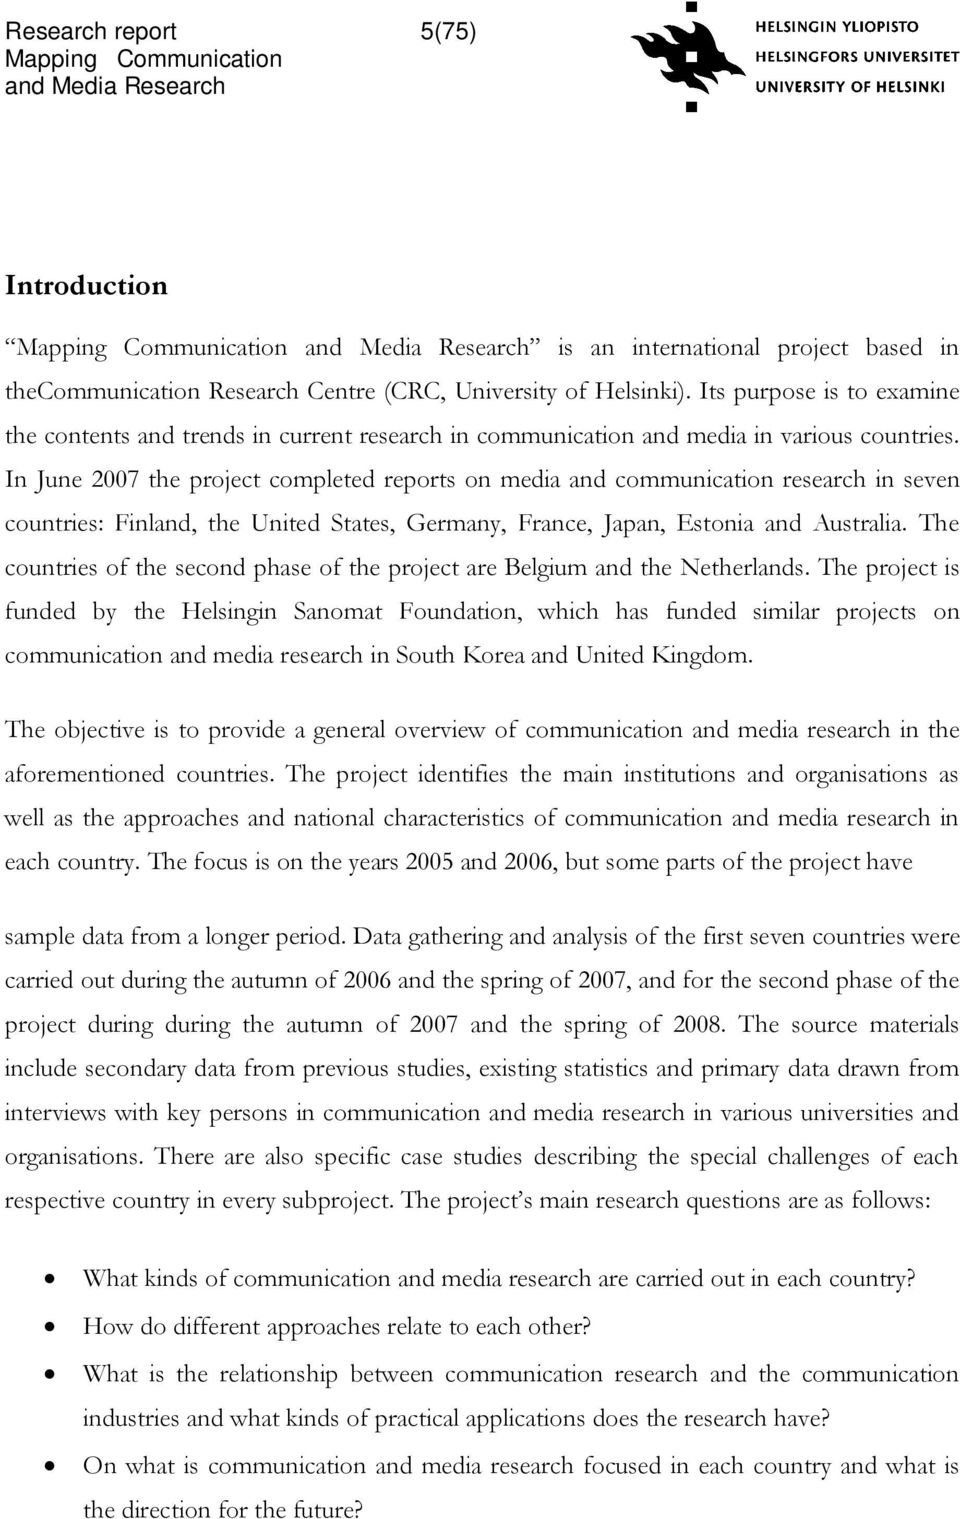 In June 2007 the project completed reports on media and communication research in seven countries: Finland, the United States, Germany, France, Japan, Estonia and Australia.